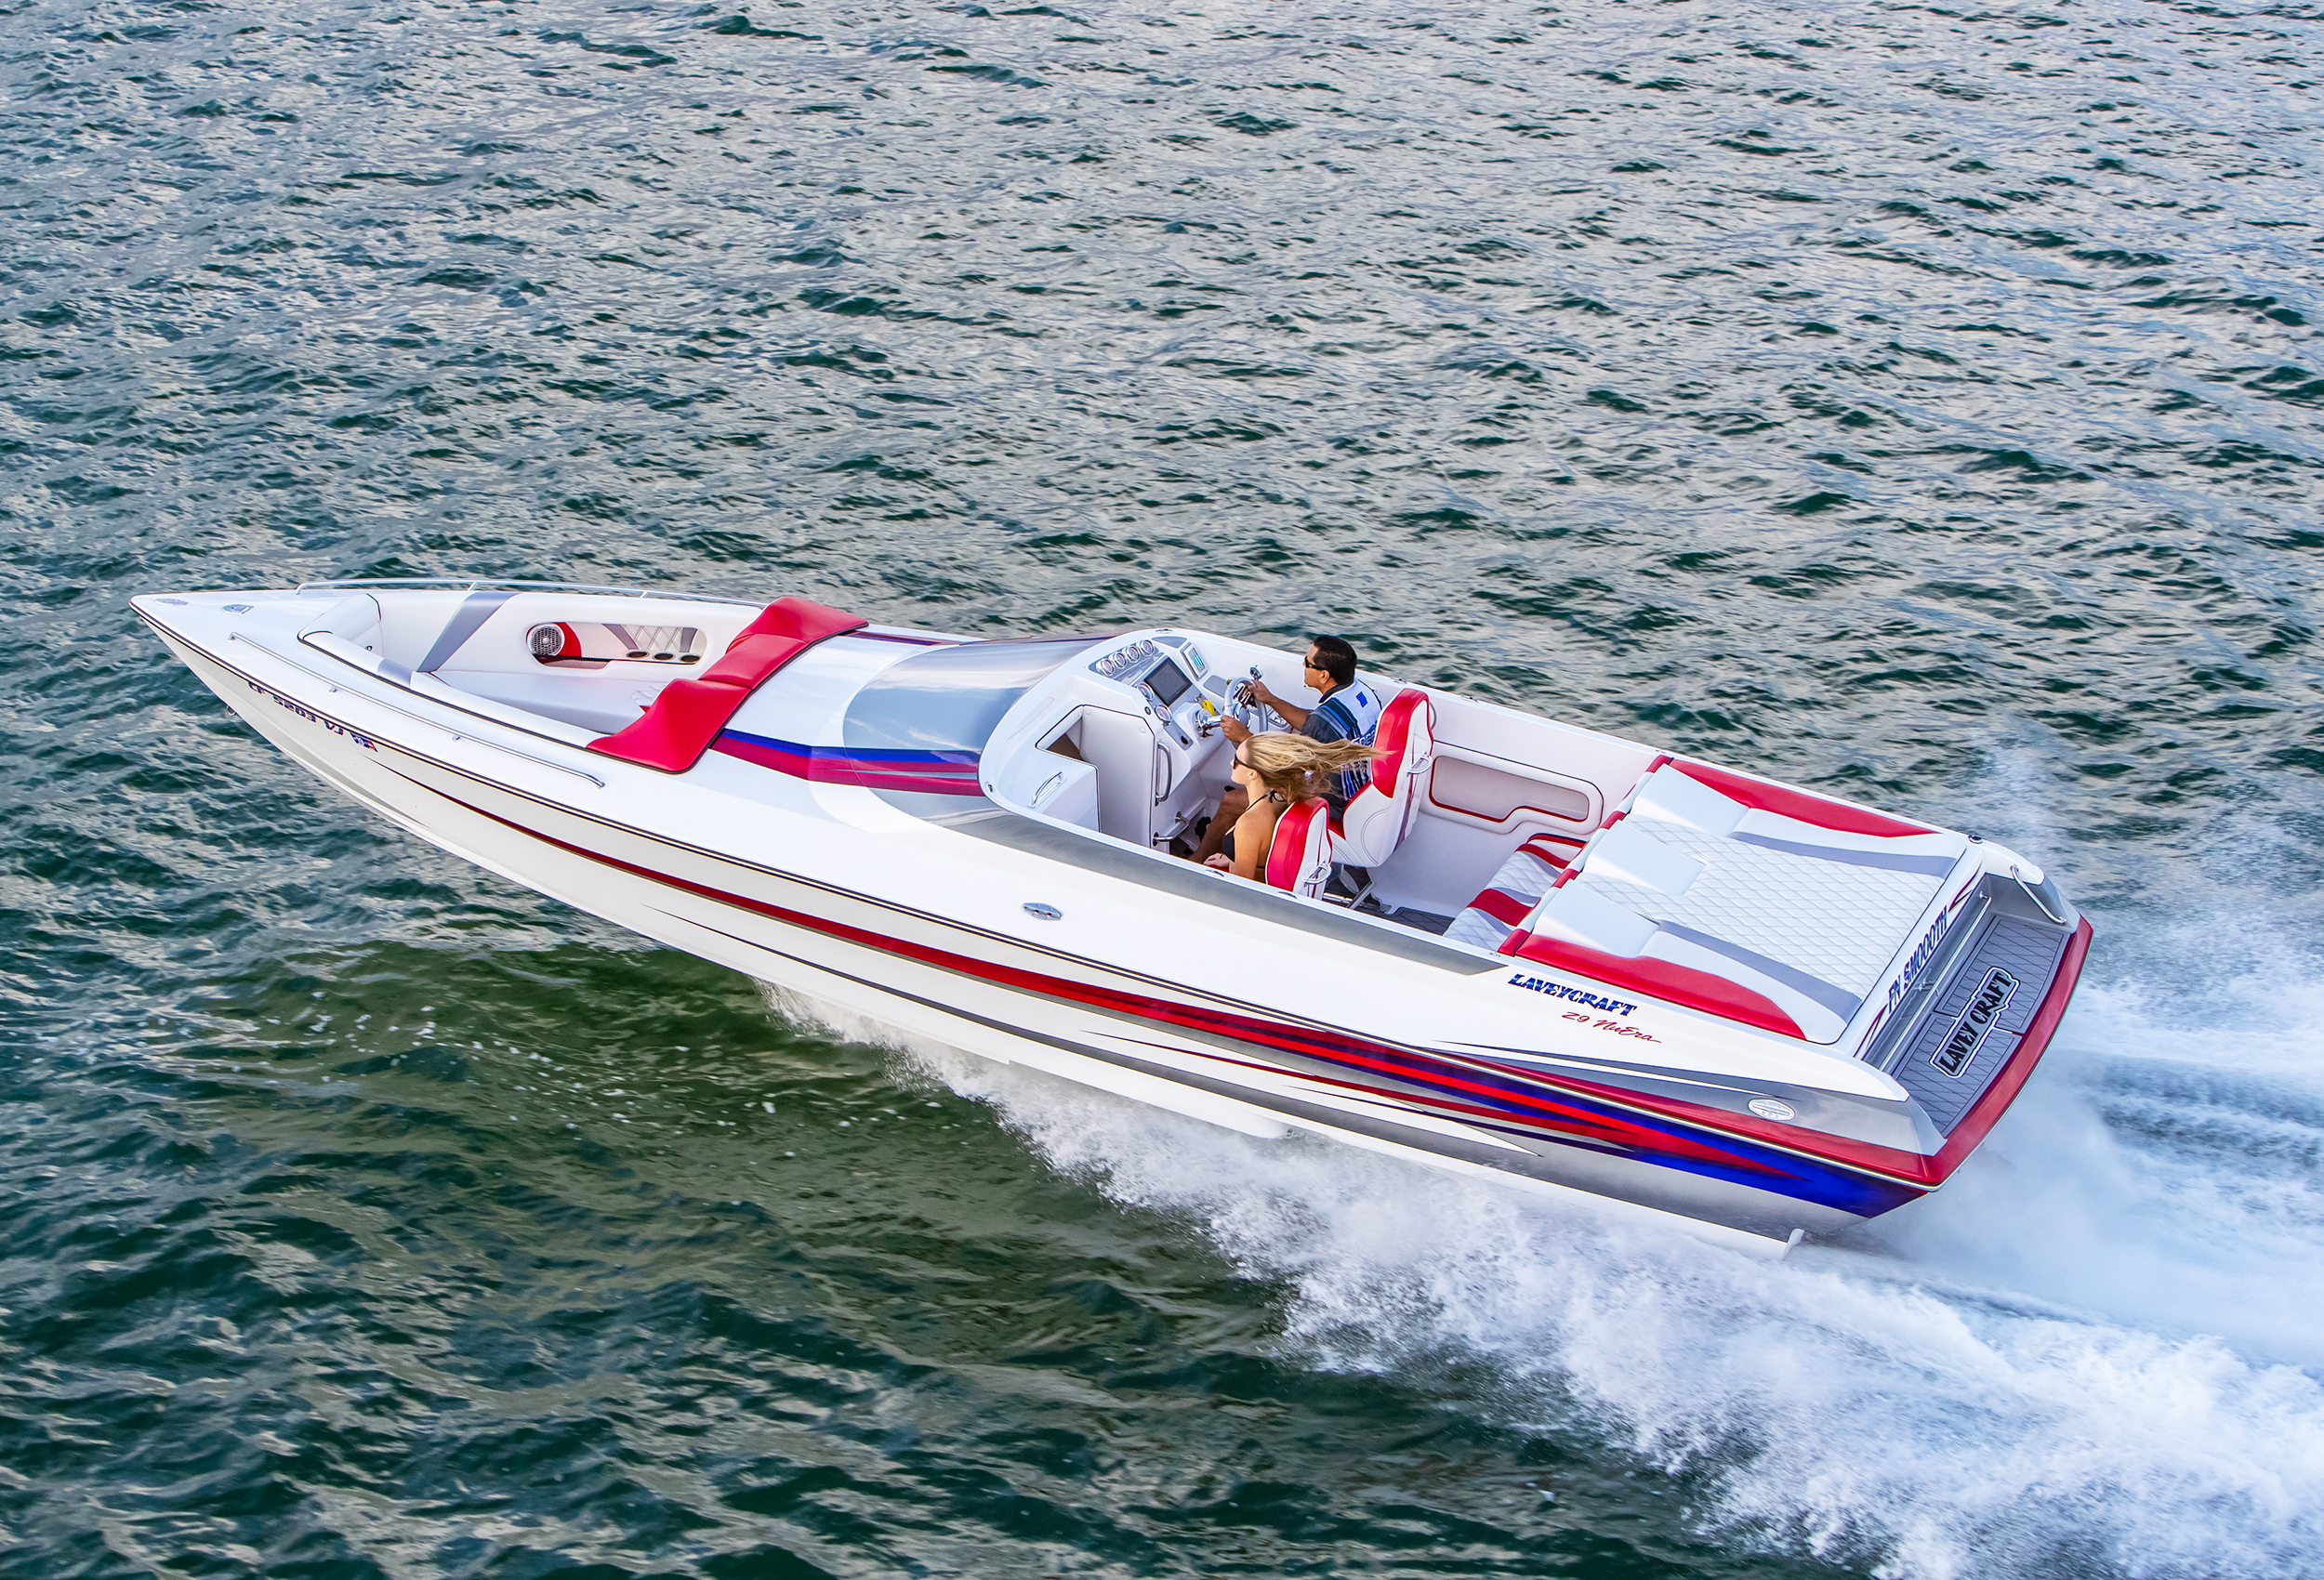 Photo Credit: Speedboat Magazine